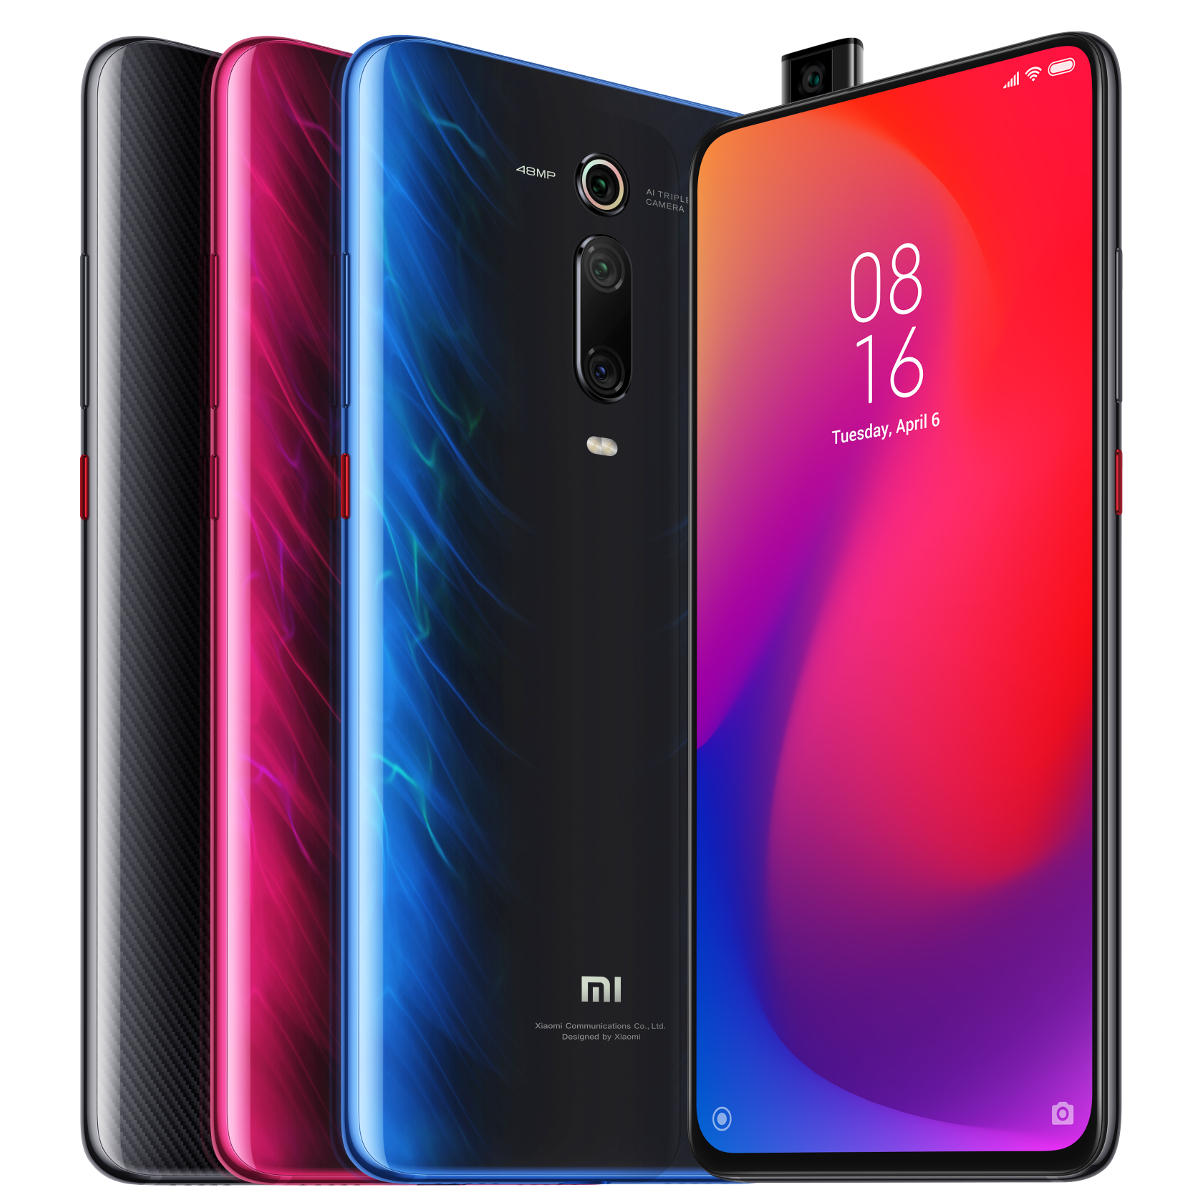 327.59 - Xiaomi Mi 9T Pro - 6GB - 64GB - Global Version - 6.39 inch - 48MP Triple Camera - NFC - 4000mAh - Snapdragon 855 Octa core - 4G Smartphone